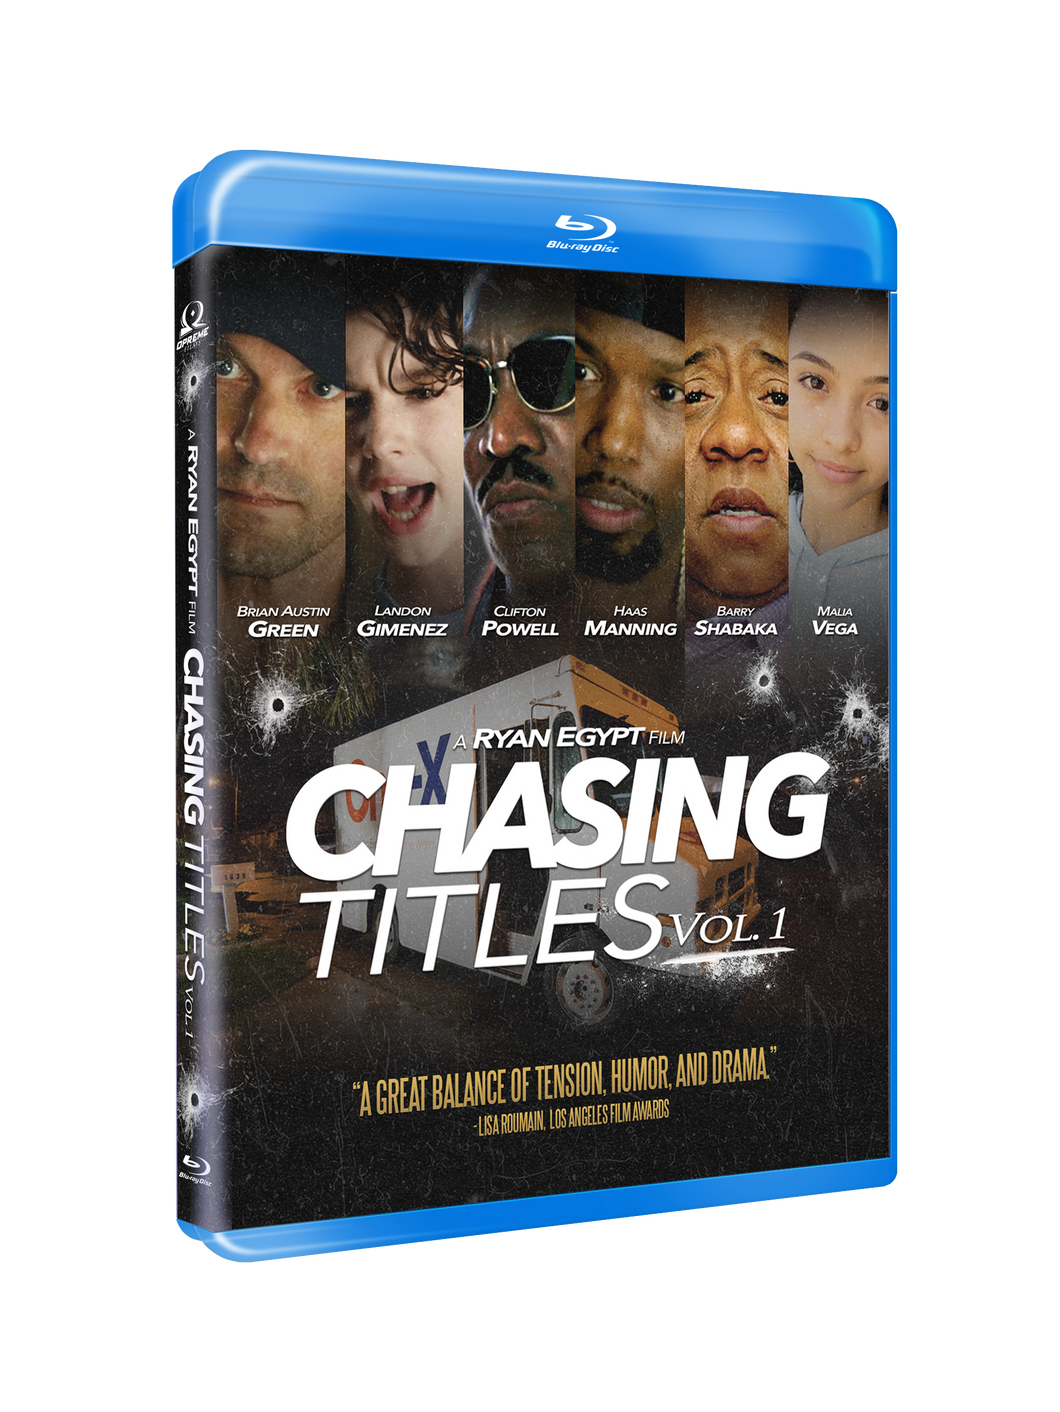 Chasing Titles: Vol. 1  - Blu-ray +Get Money - Single - 2018